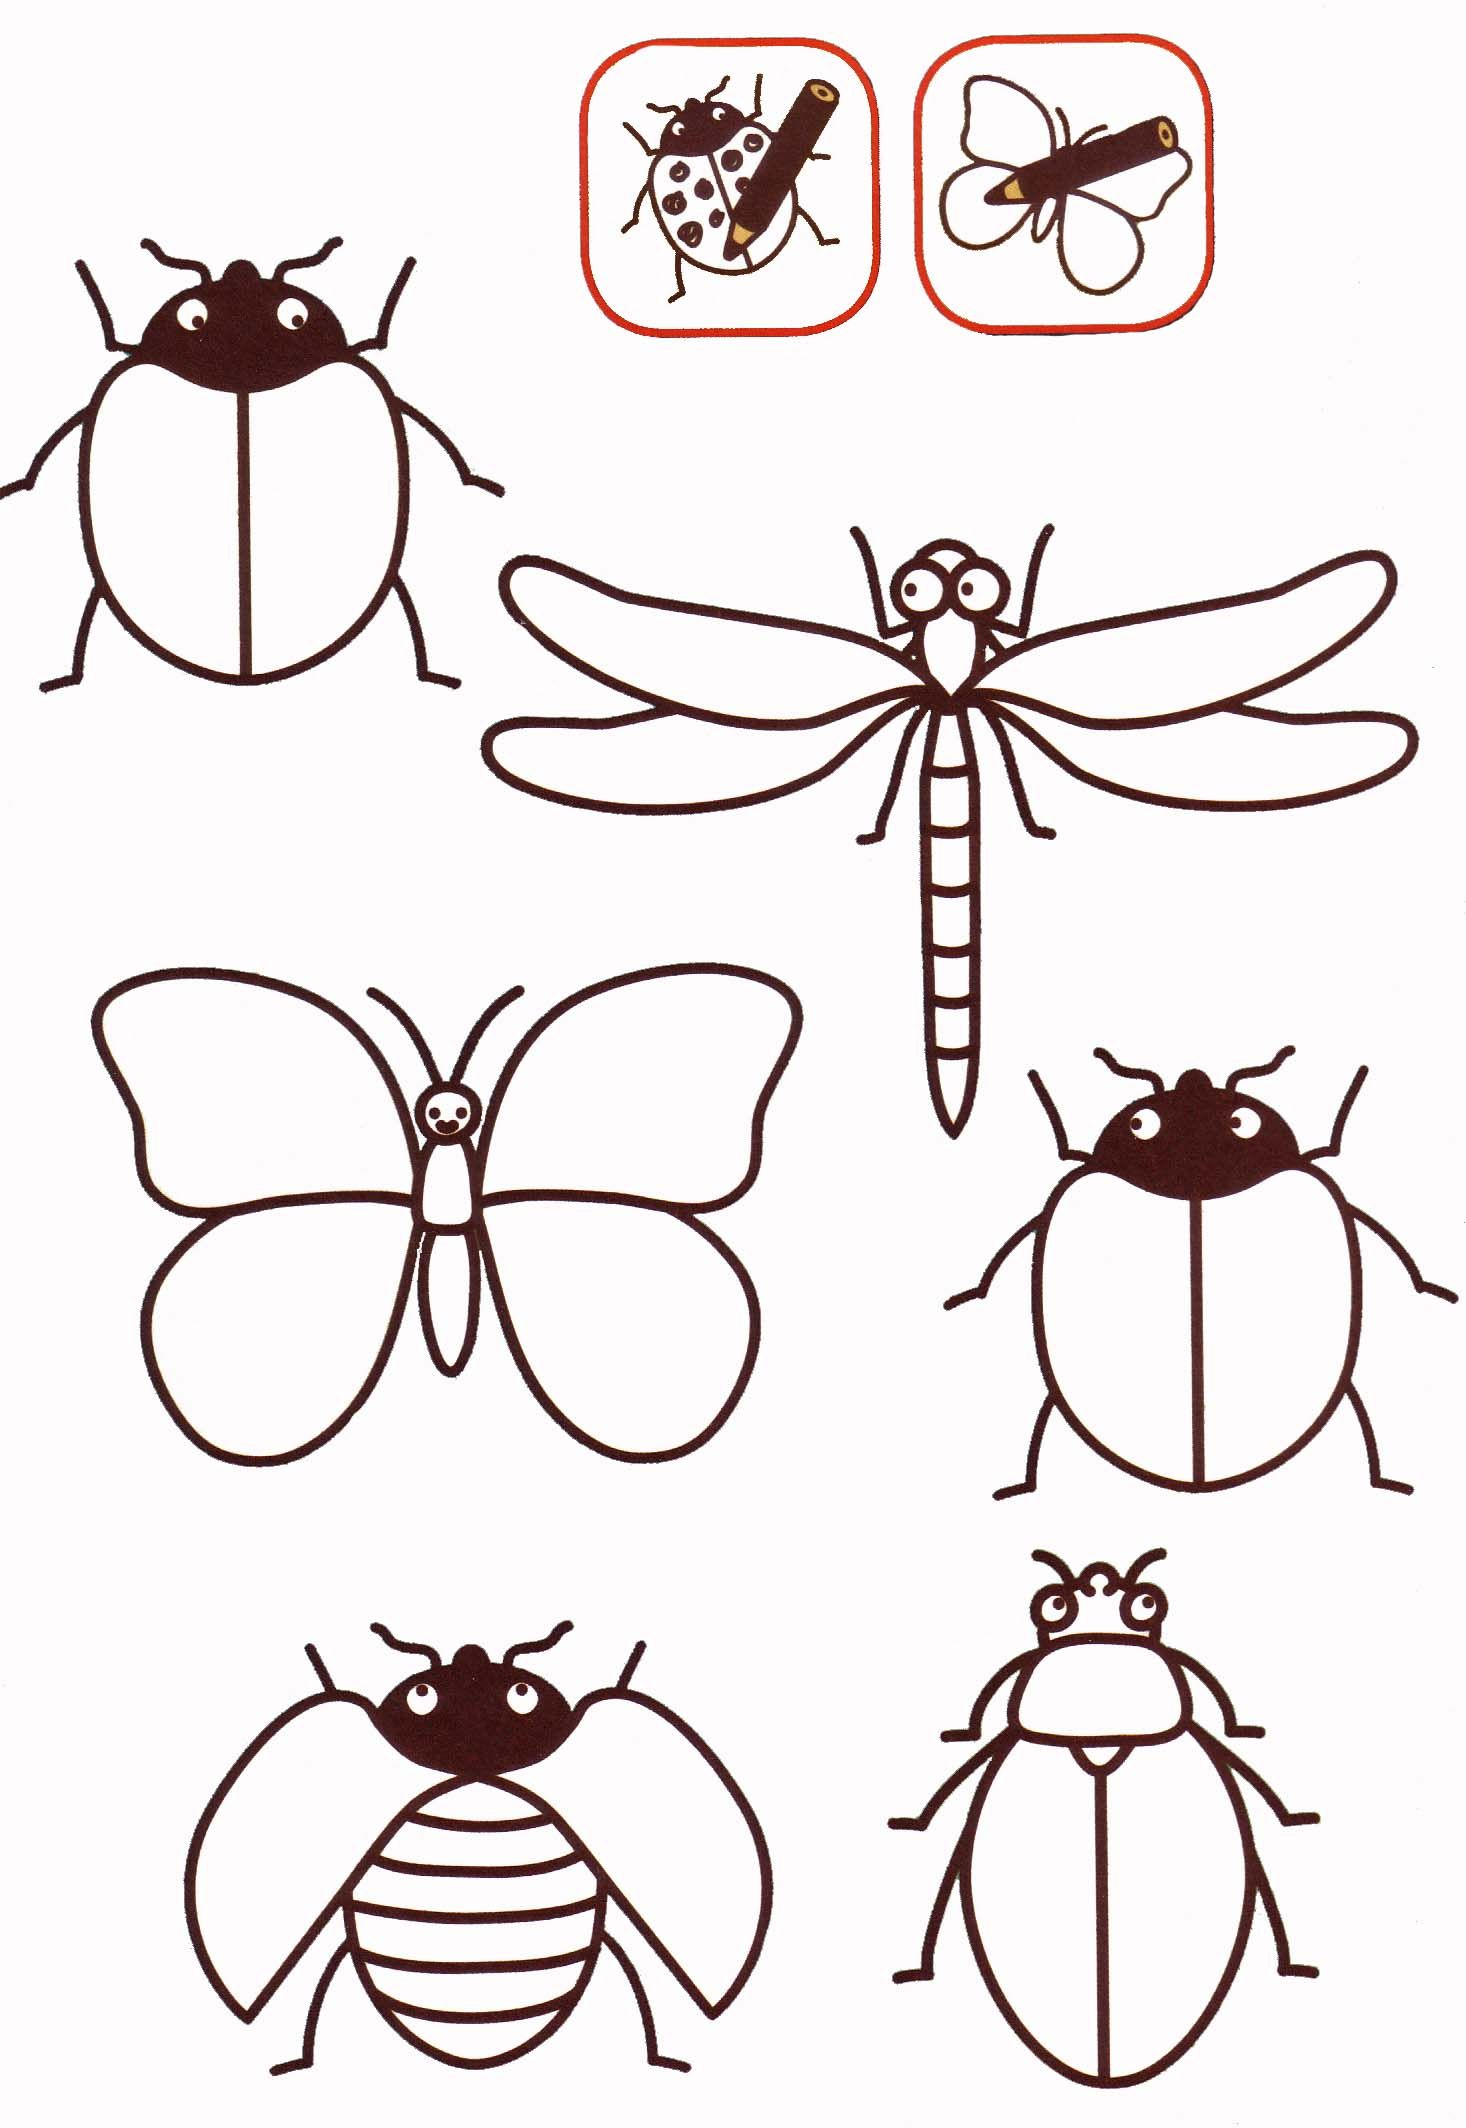 Insectos … | Insect art, Pattern art, Bugs and insects